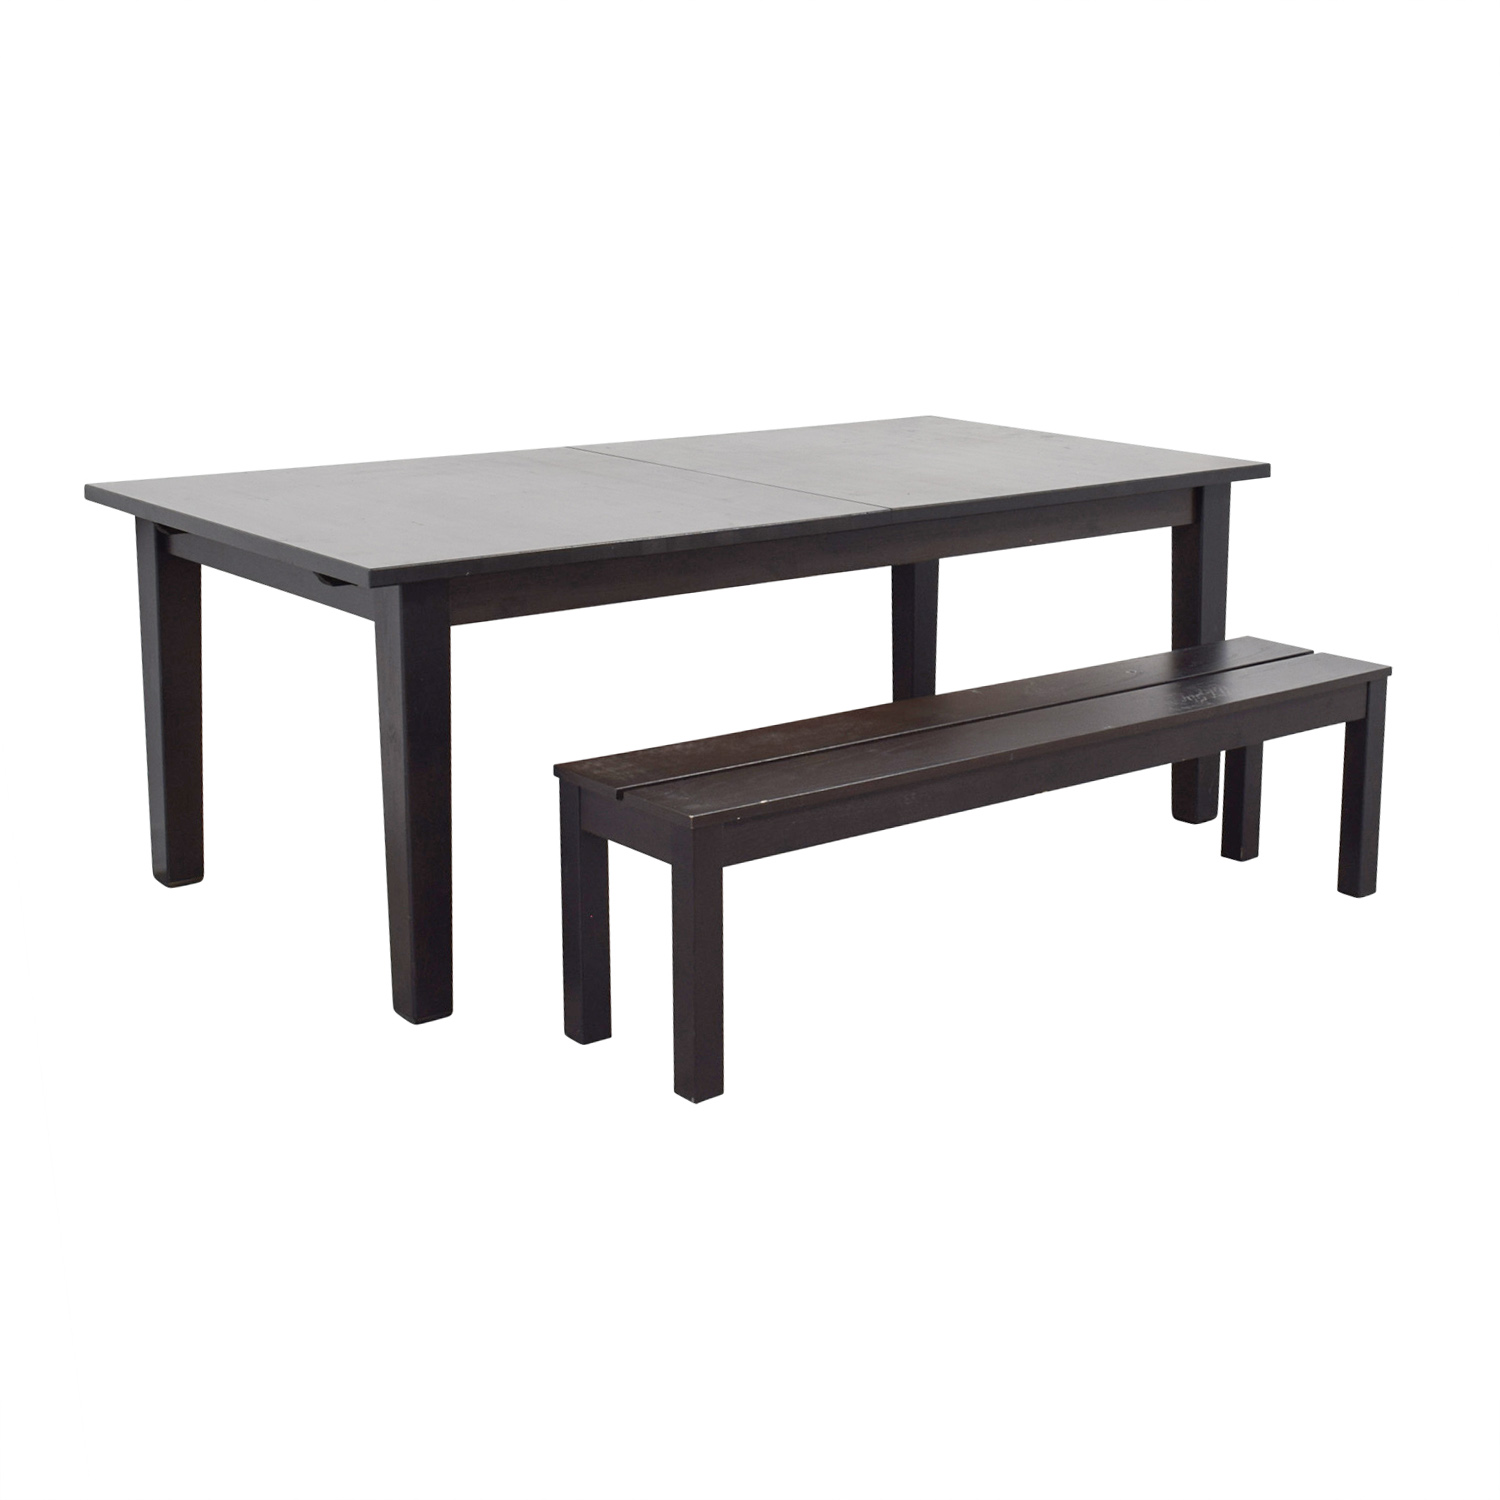 Dining Room Tables With Benches: IKEA IKEA Extendable Dining Room Table With Bench / Tables